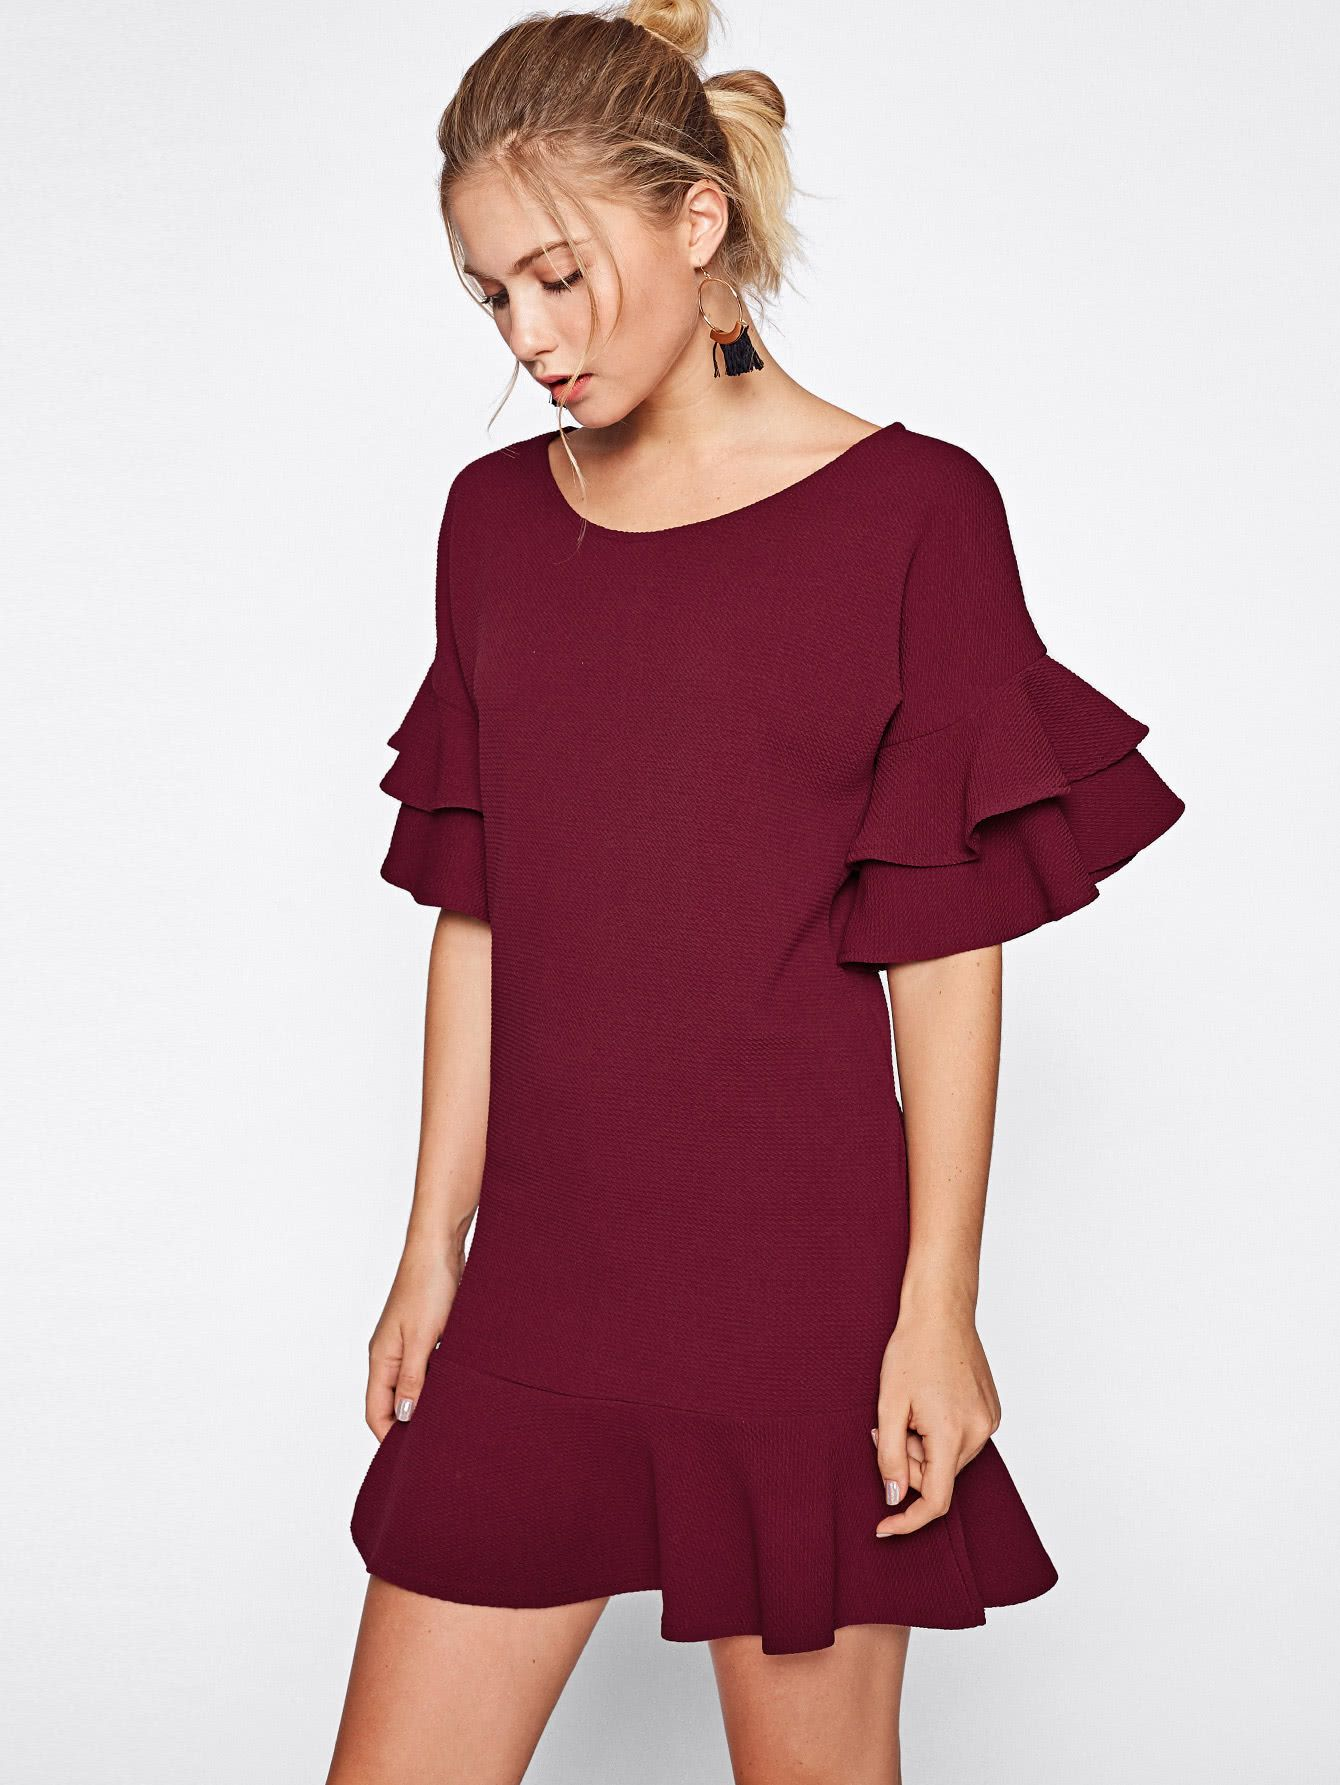 Shop Tiered Flute Sleeve Frill Hem Textured Dress Online Shein Offers Tiered Flute Sleeve Frill Hem Textured Dress Amp M Dresses Textured Dress Cool Outfits [ 1785 x 1340 Pixel ]